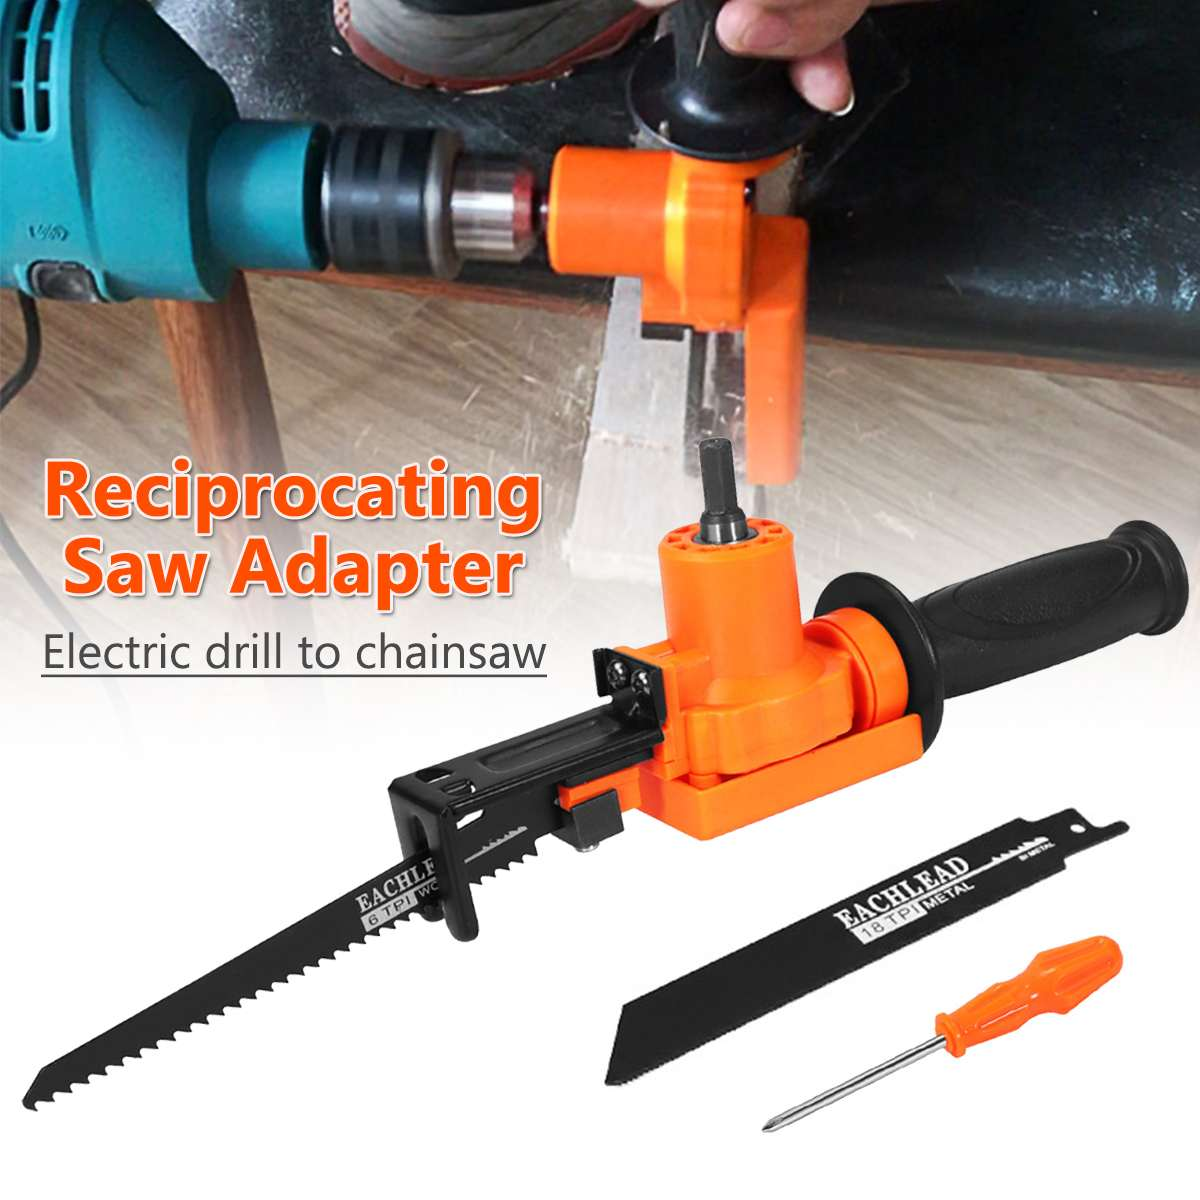 Reciprocating Saw Adapter Electric Drill Modified Electric Saw Hand Tool Wood Metal Cutter Long Service Life Durability